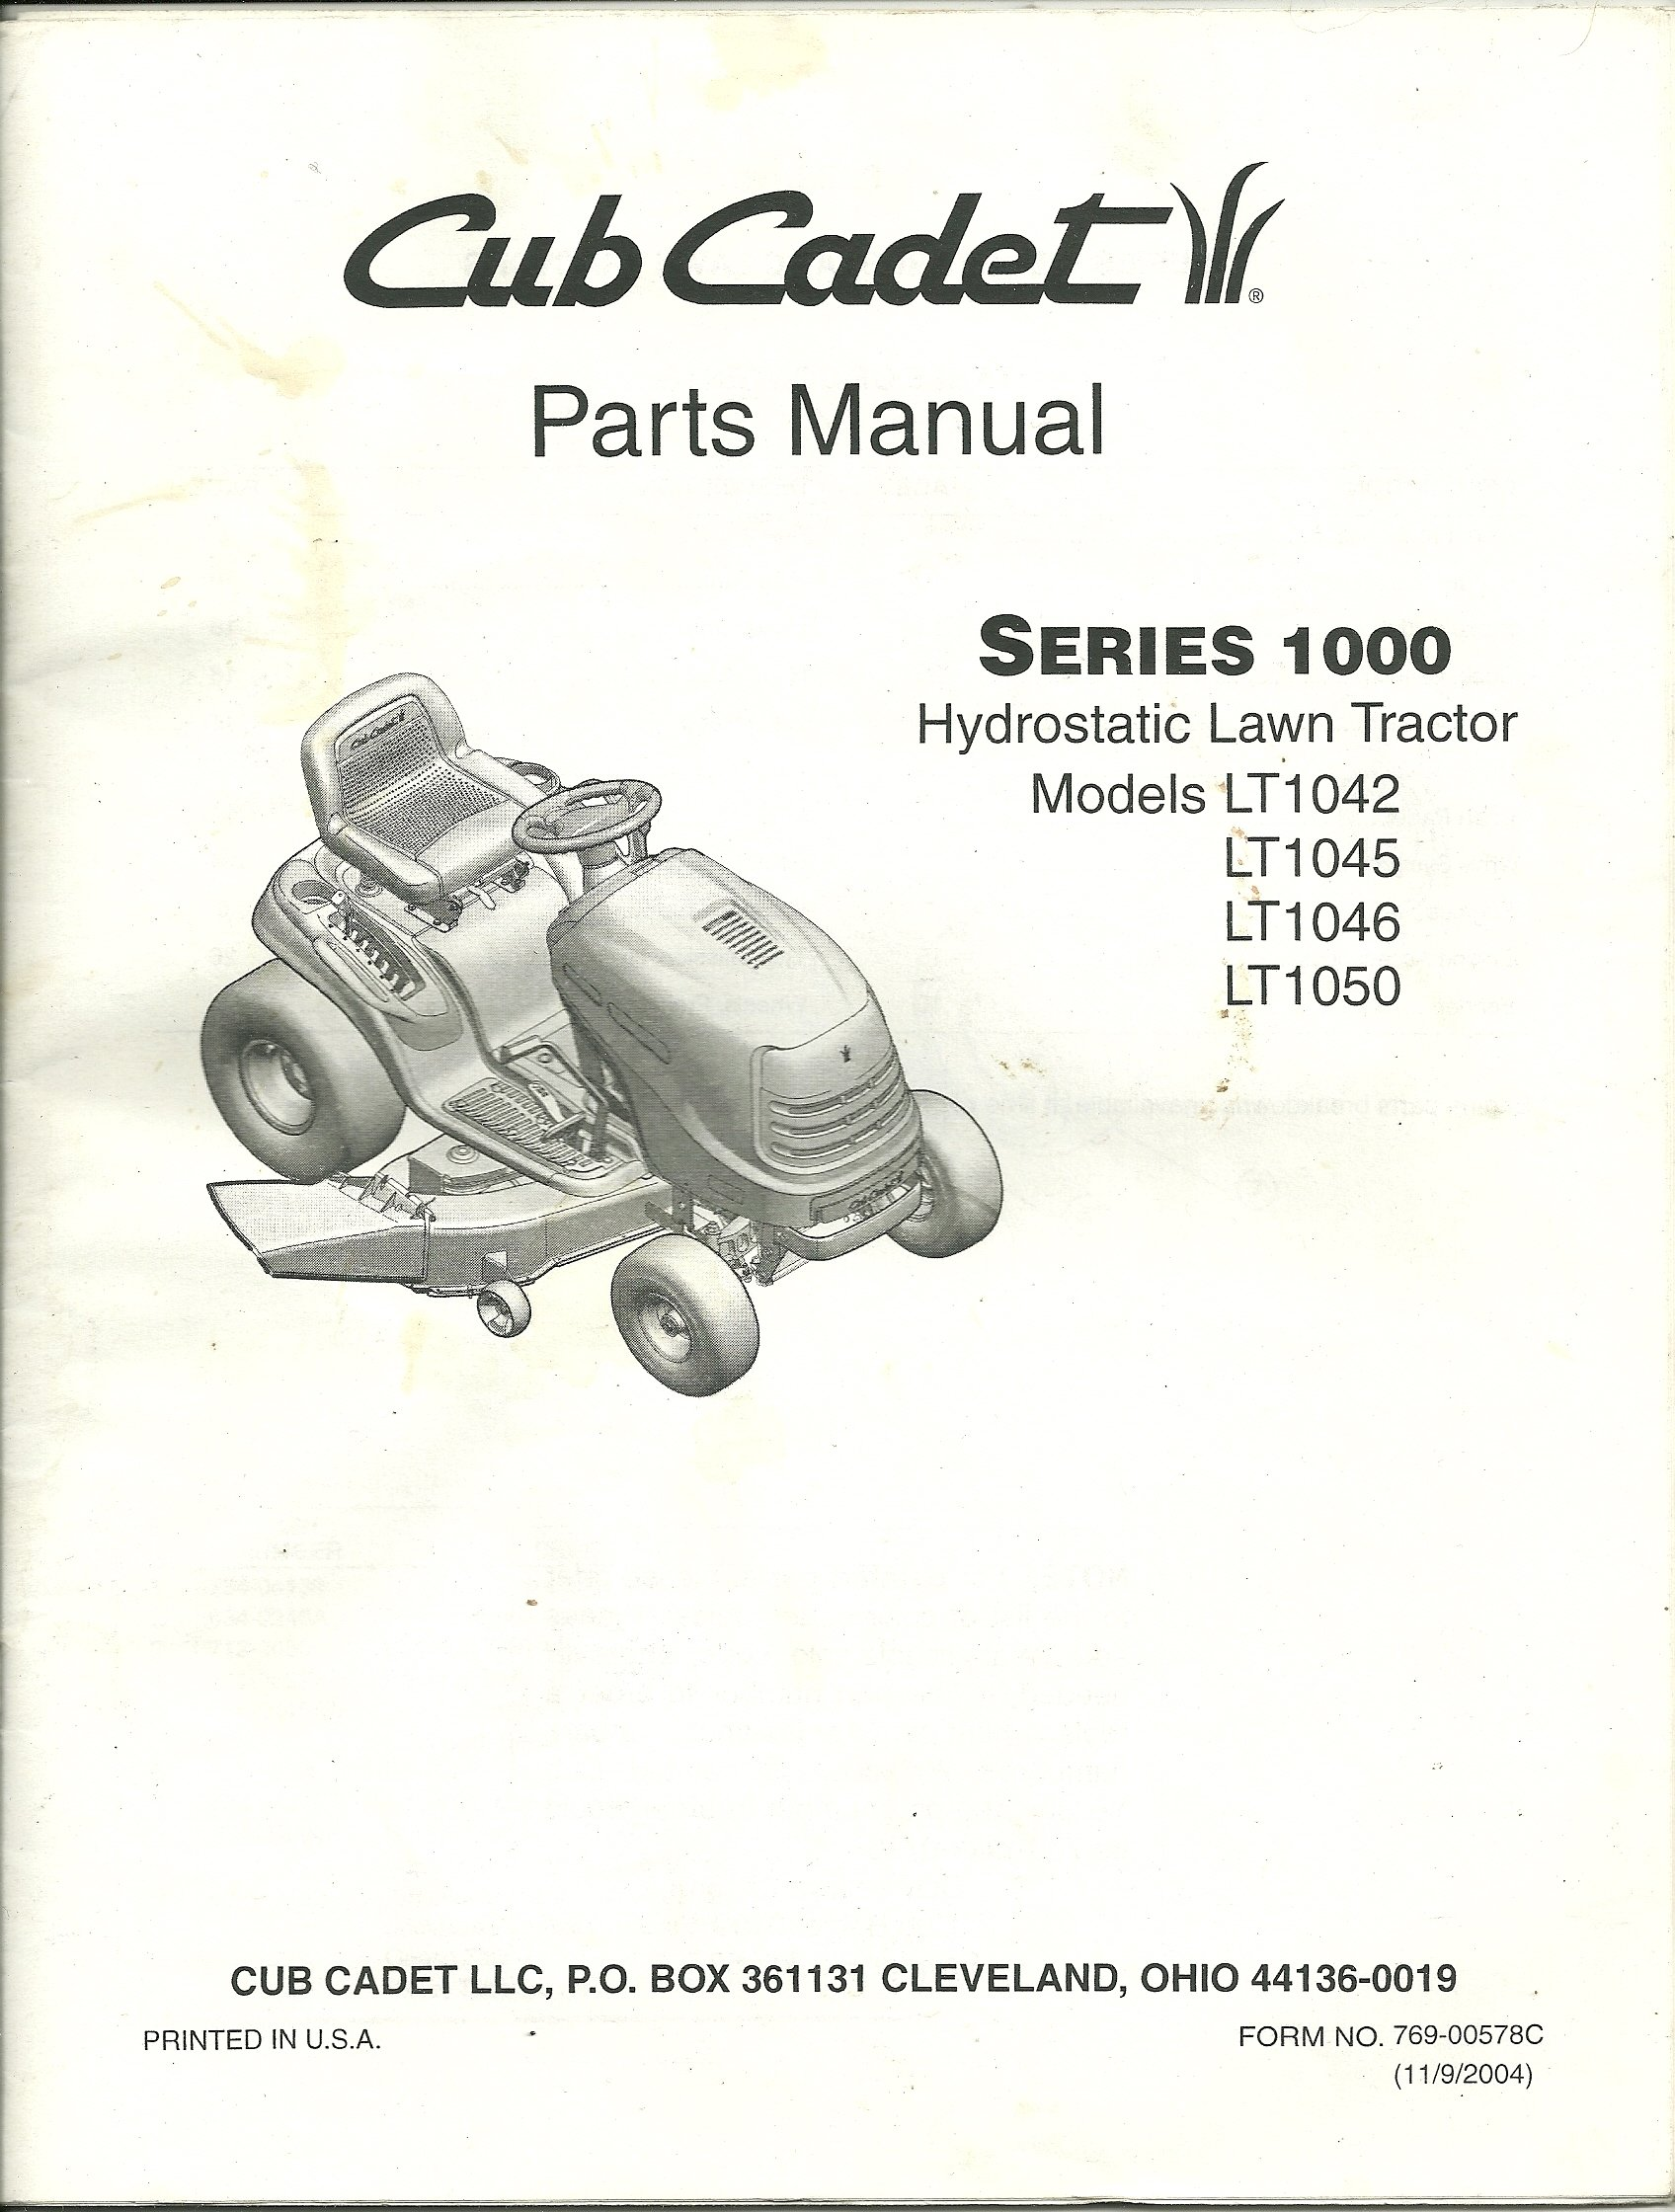 cub cadet parts manual series 1000 hydrostatic lawn tractor models rh  amazon com cub cadet lt1045 service manual cub cadet lt1045 service manual